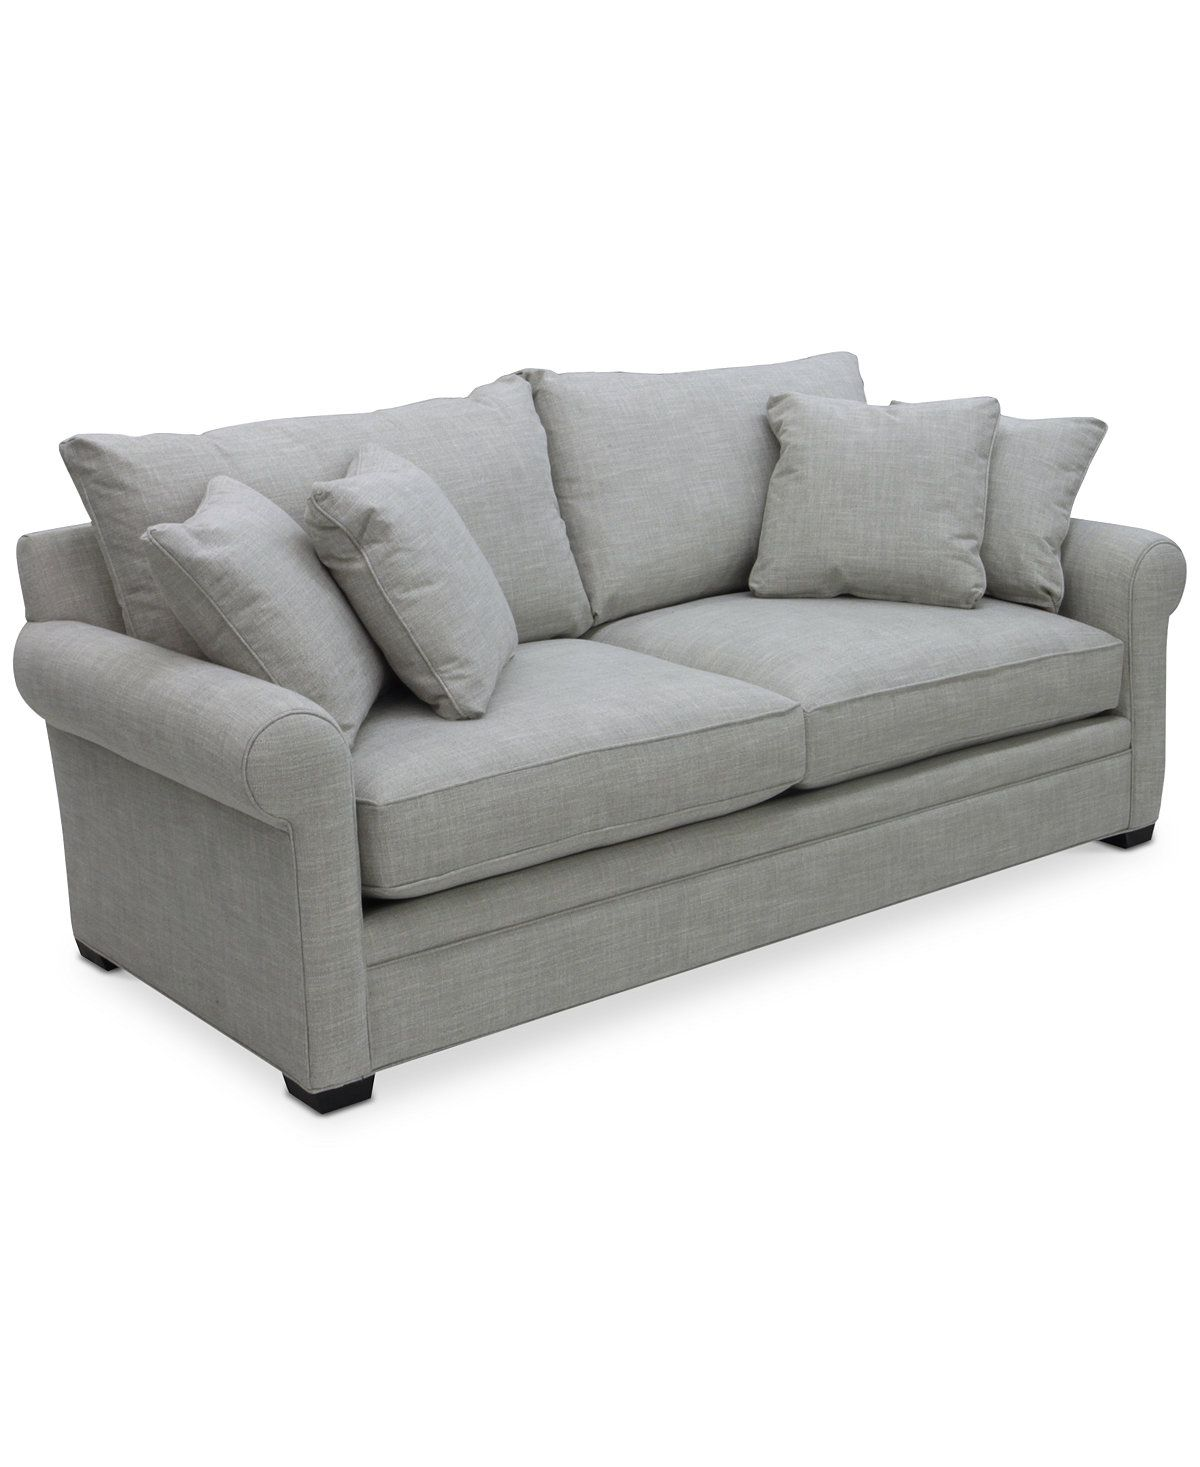 Couches 4 Dial Ii 89 Sofa With 4 Toss Pillows In 2019 Furniture Sofa